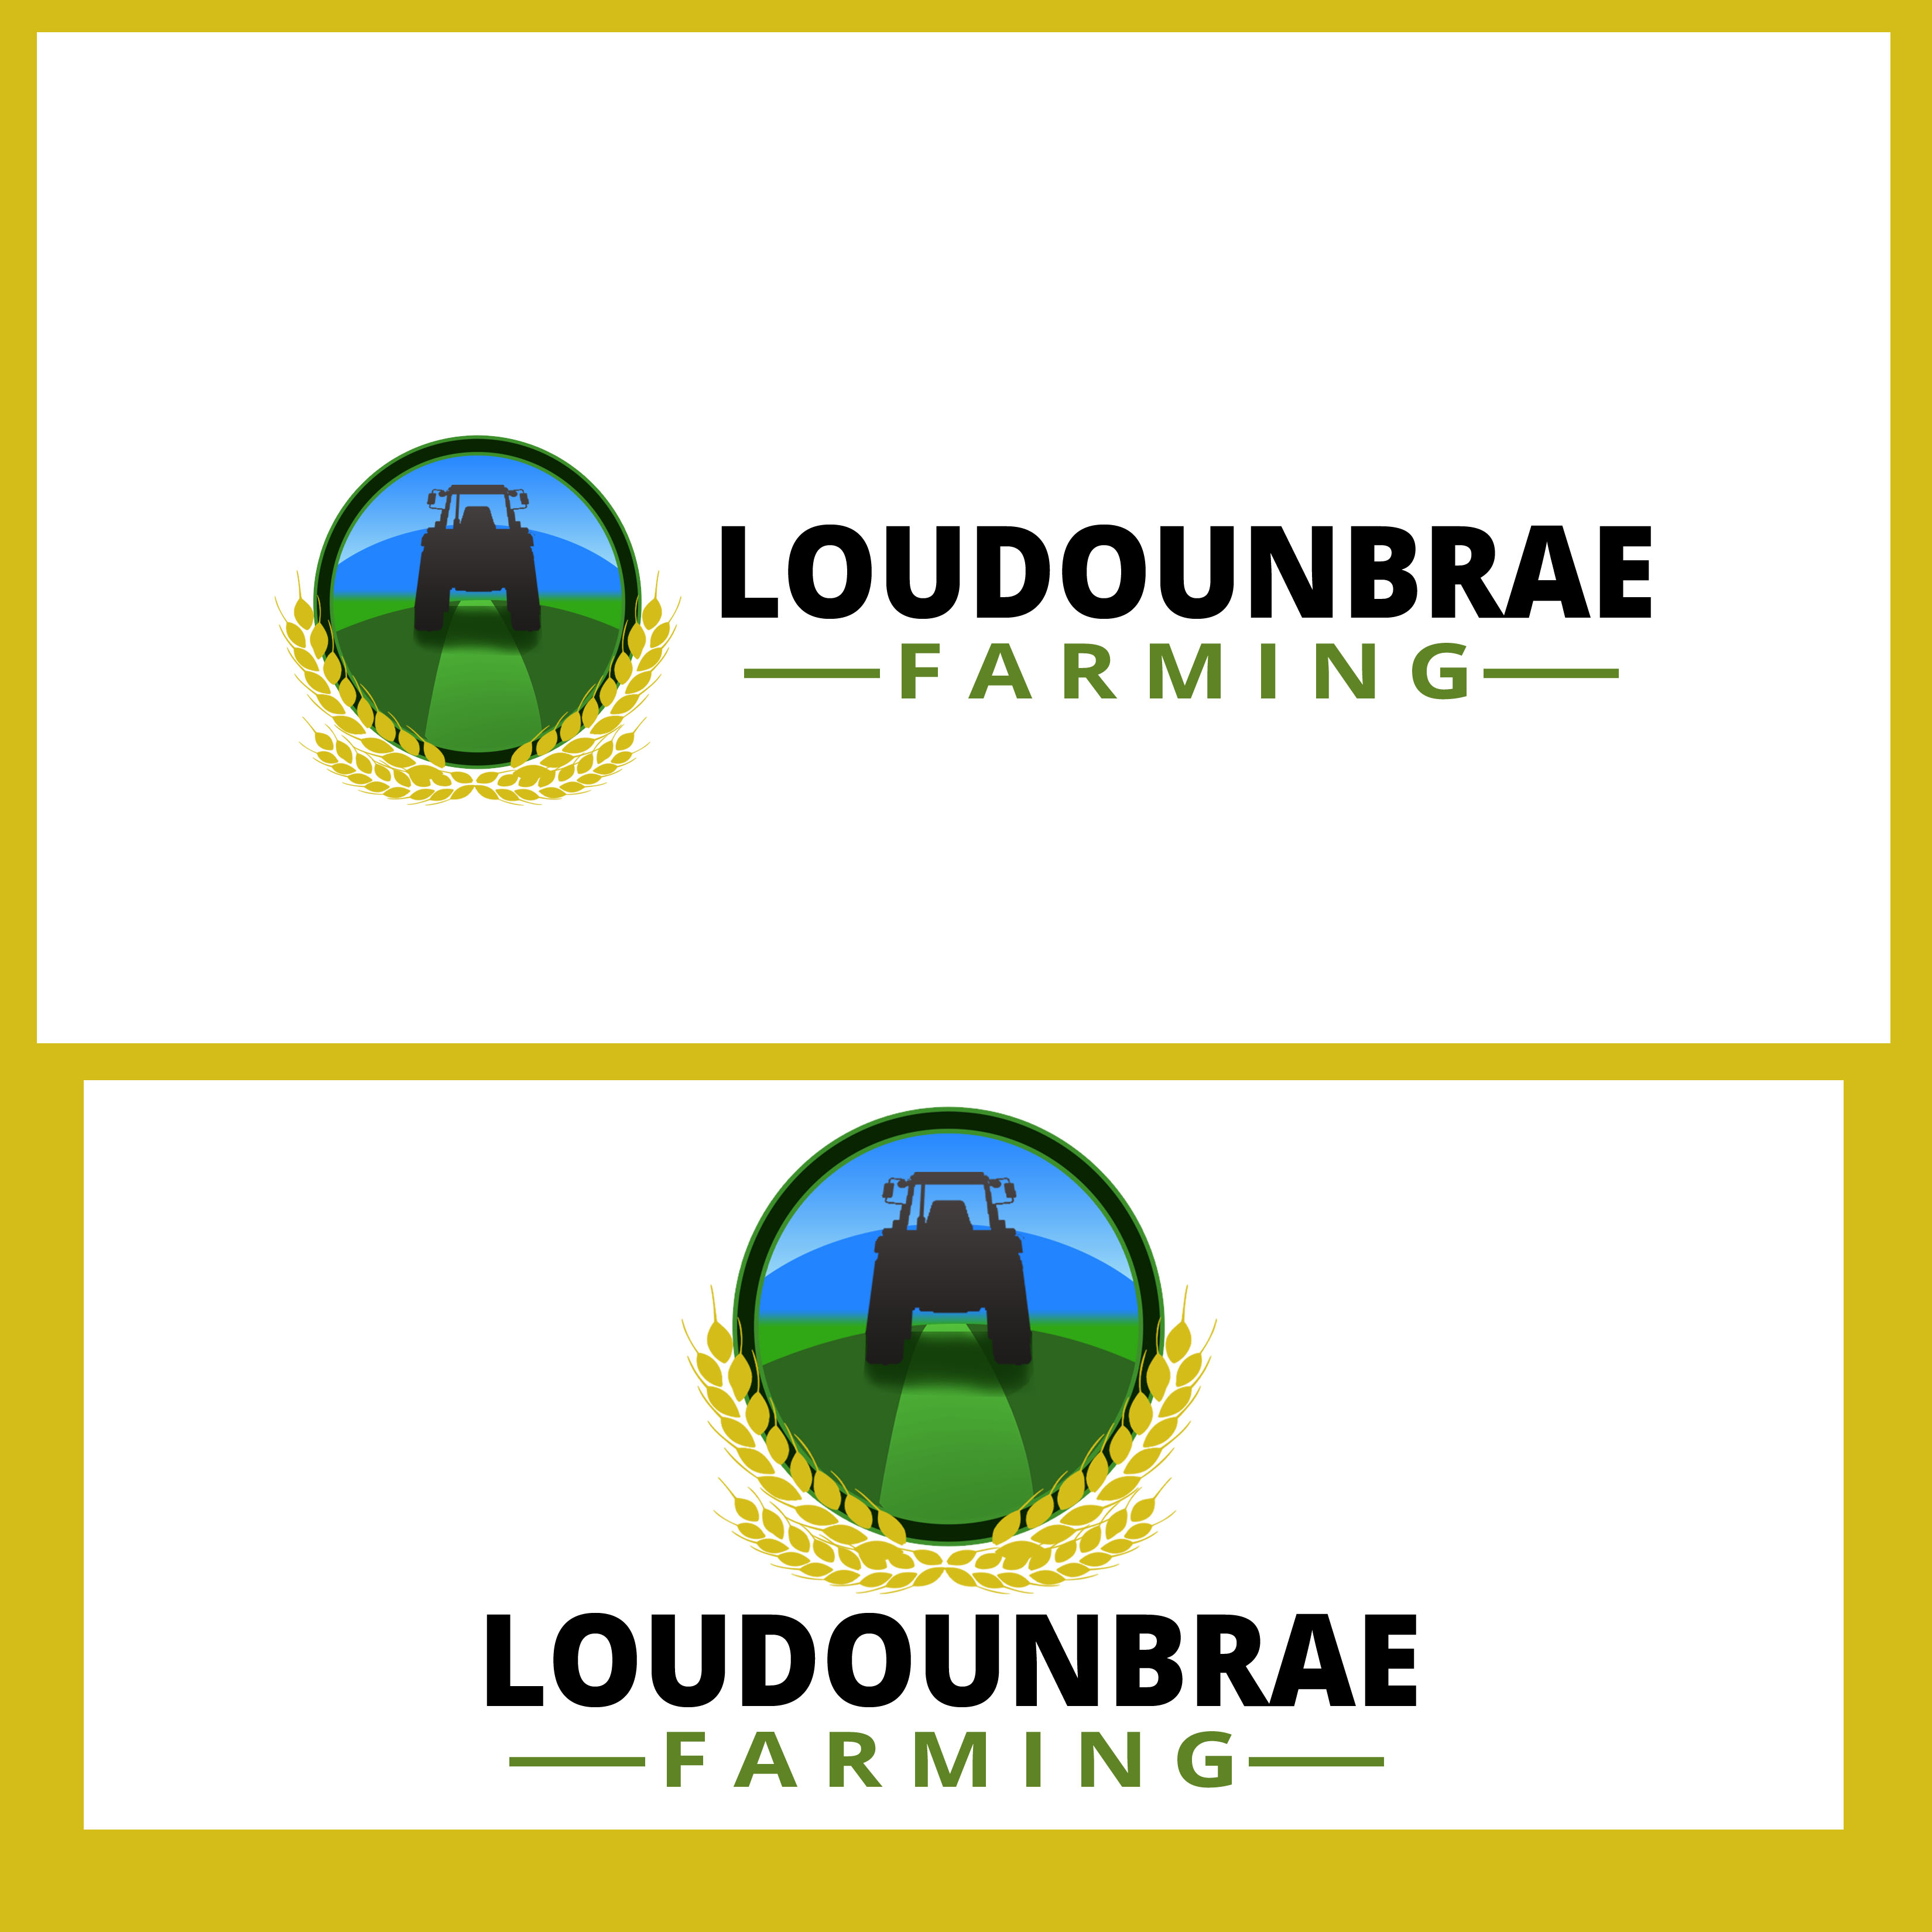 Logo Design by Allan Esclamado - Entry No. 8 in the Logo Design Contest Creative Logo Design for Loudounbrae Farming.